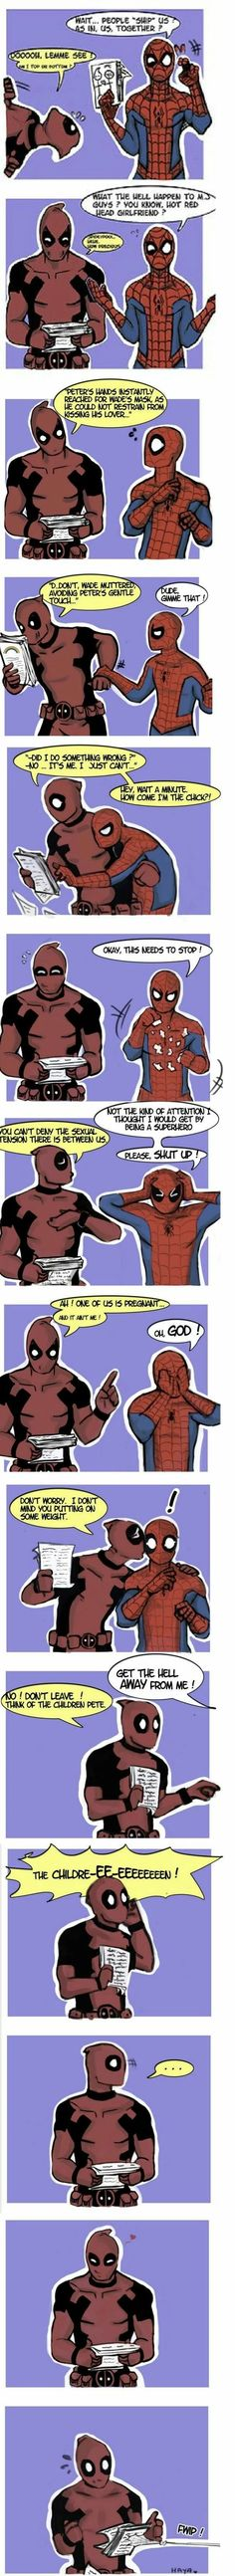 Some more Deadpool funnies - Imgur